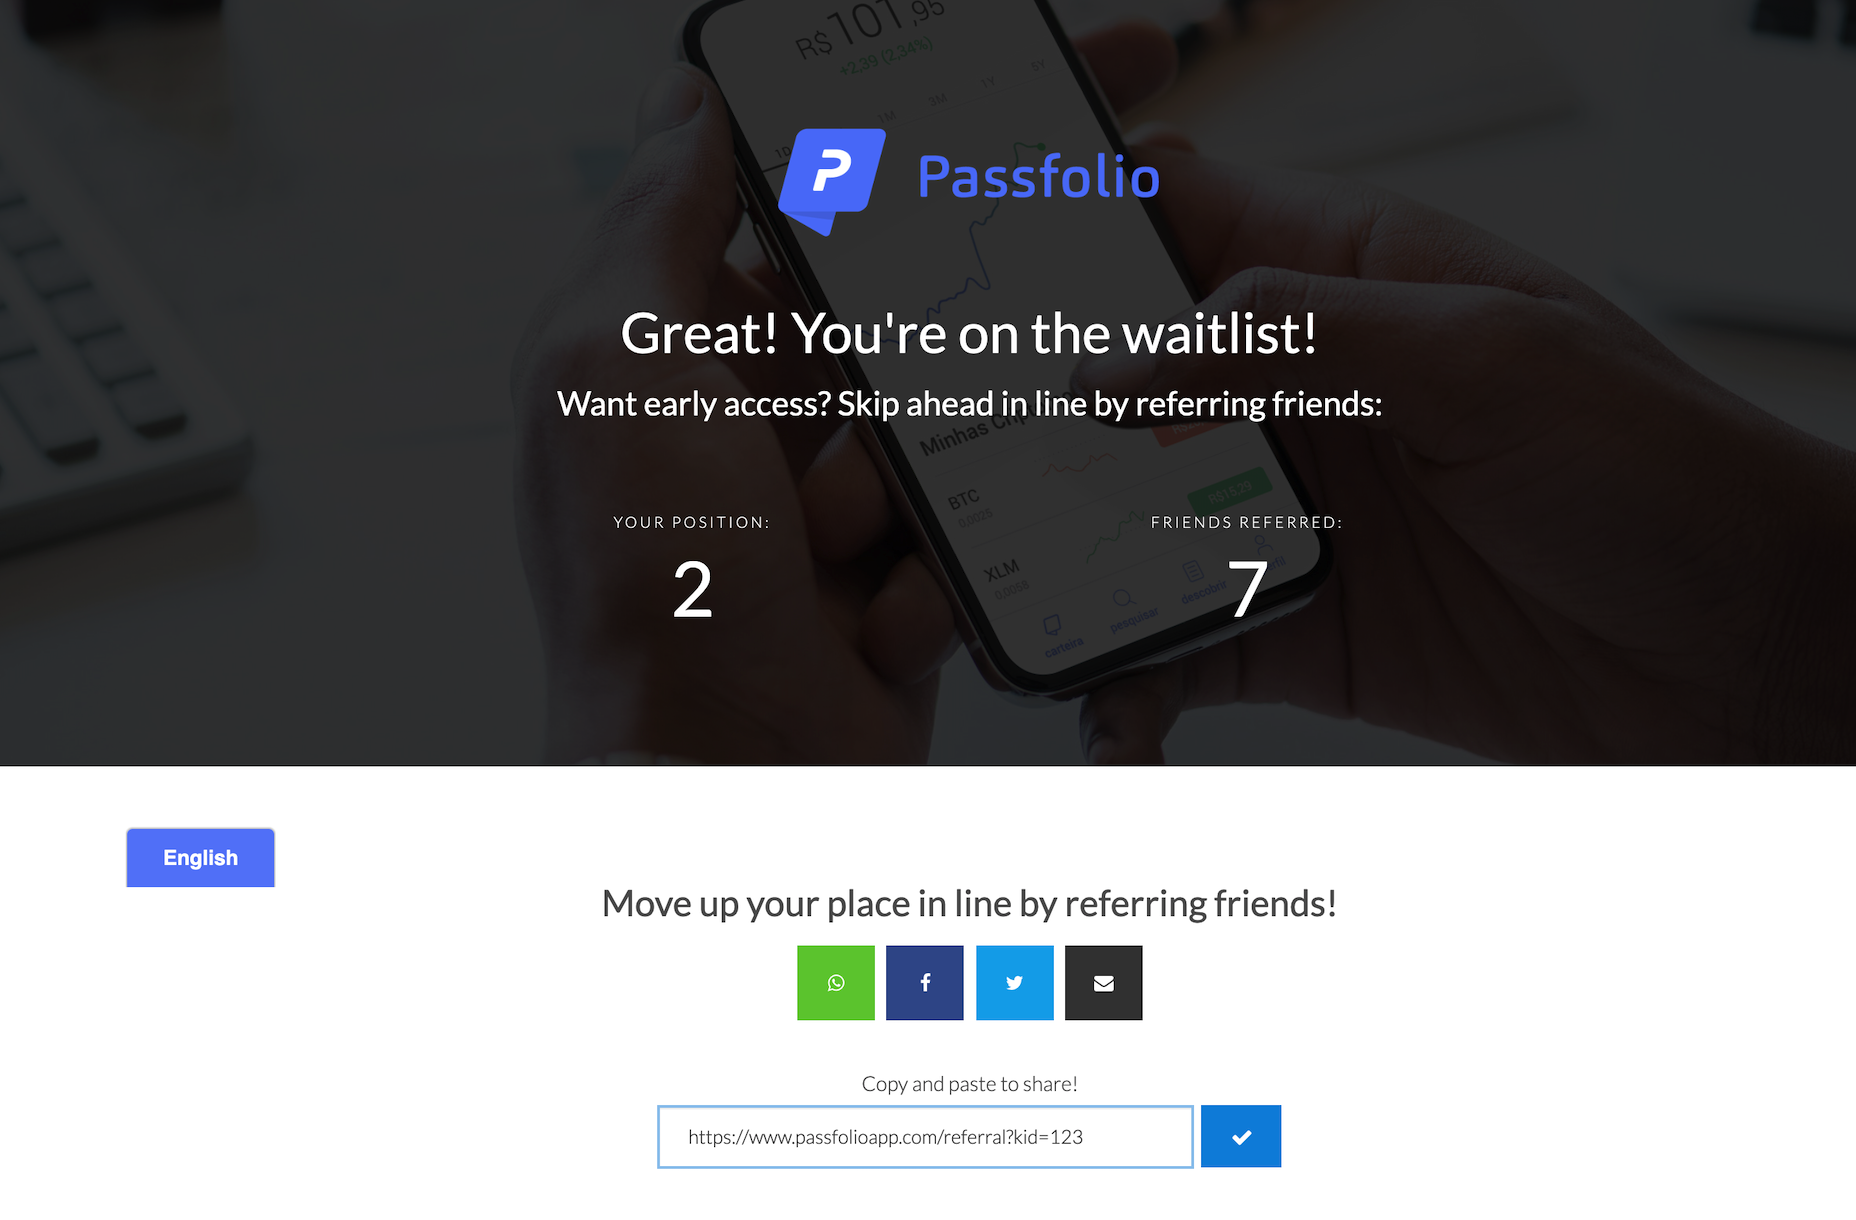 Passfolio thanks page